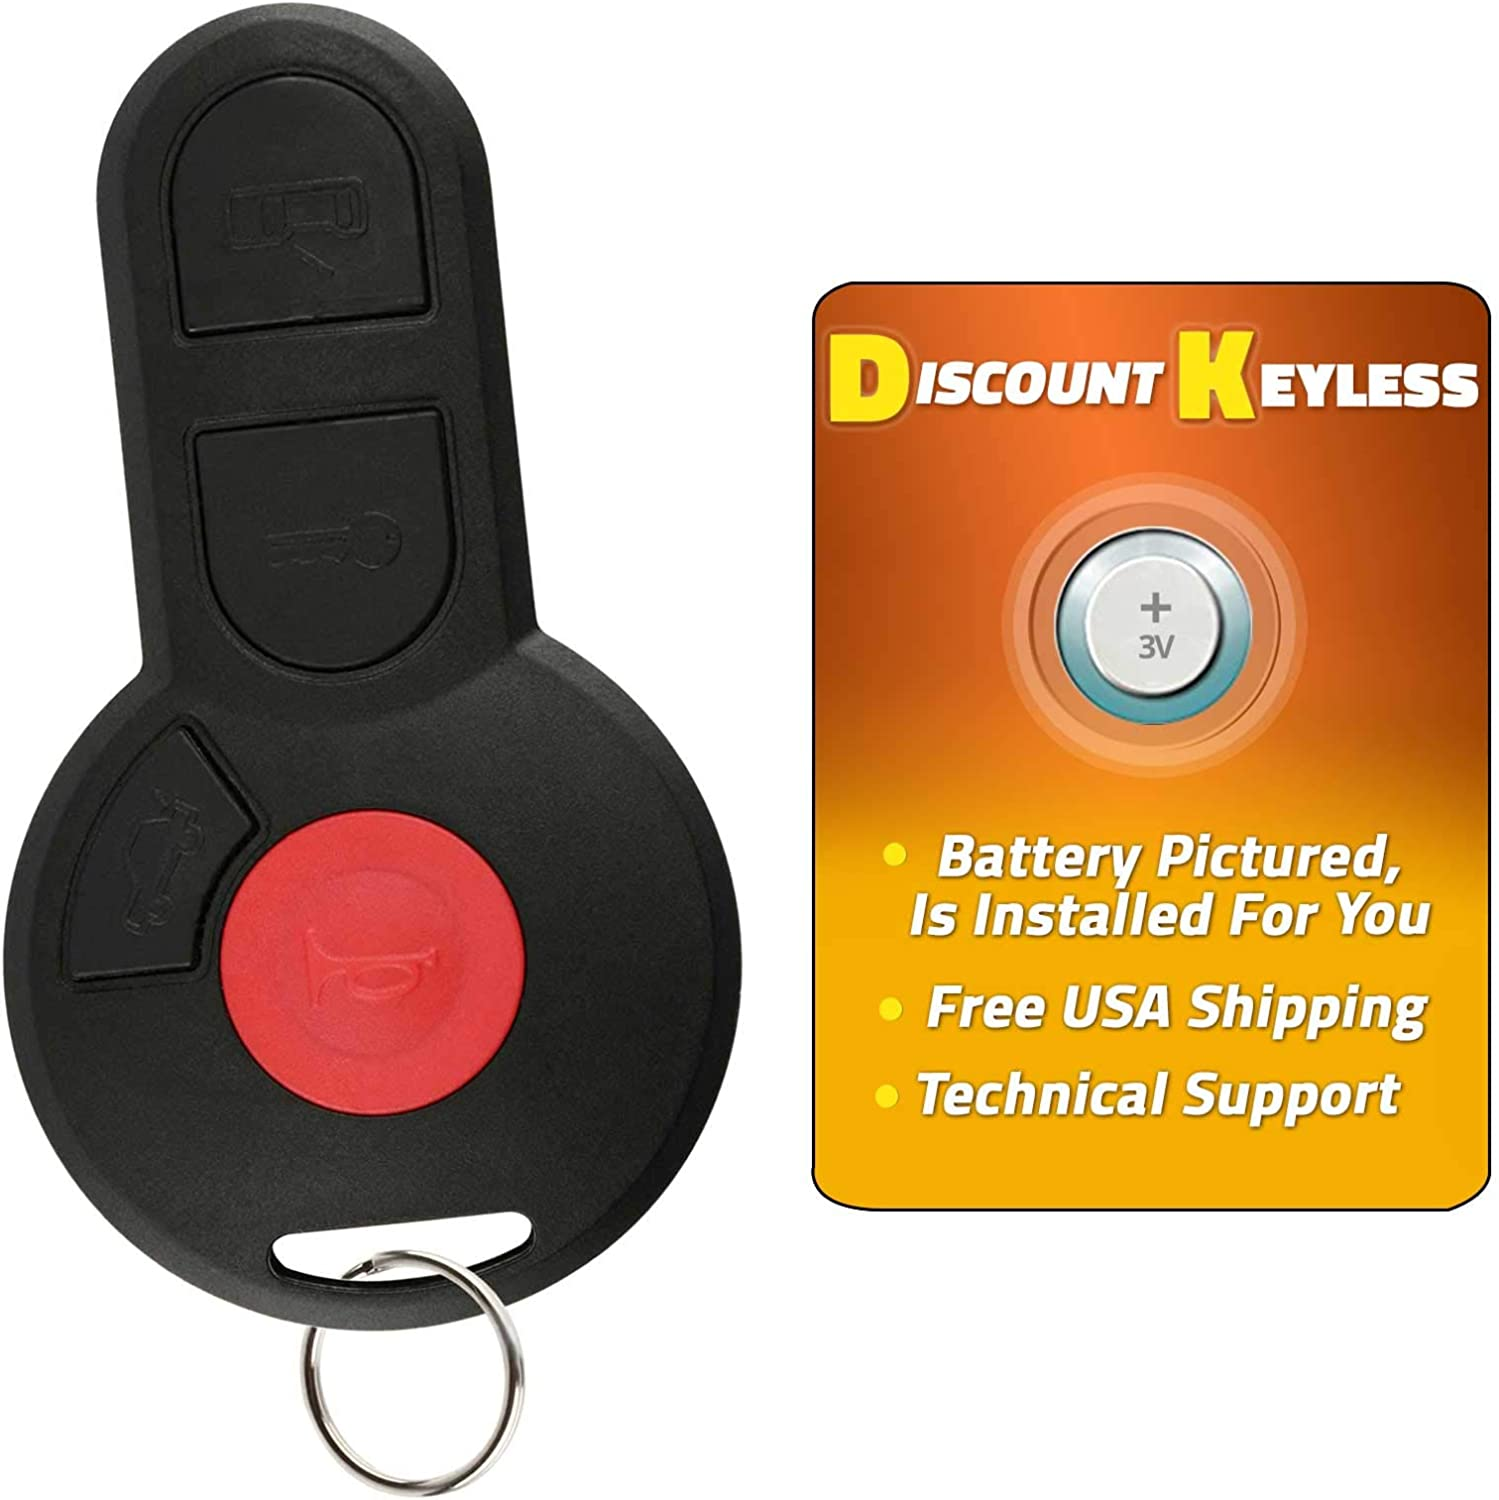 Pack of 2 KeylessOption Keyless Entry Remote Control Car Key Fob Replacement for VW M3GHU01WT